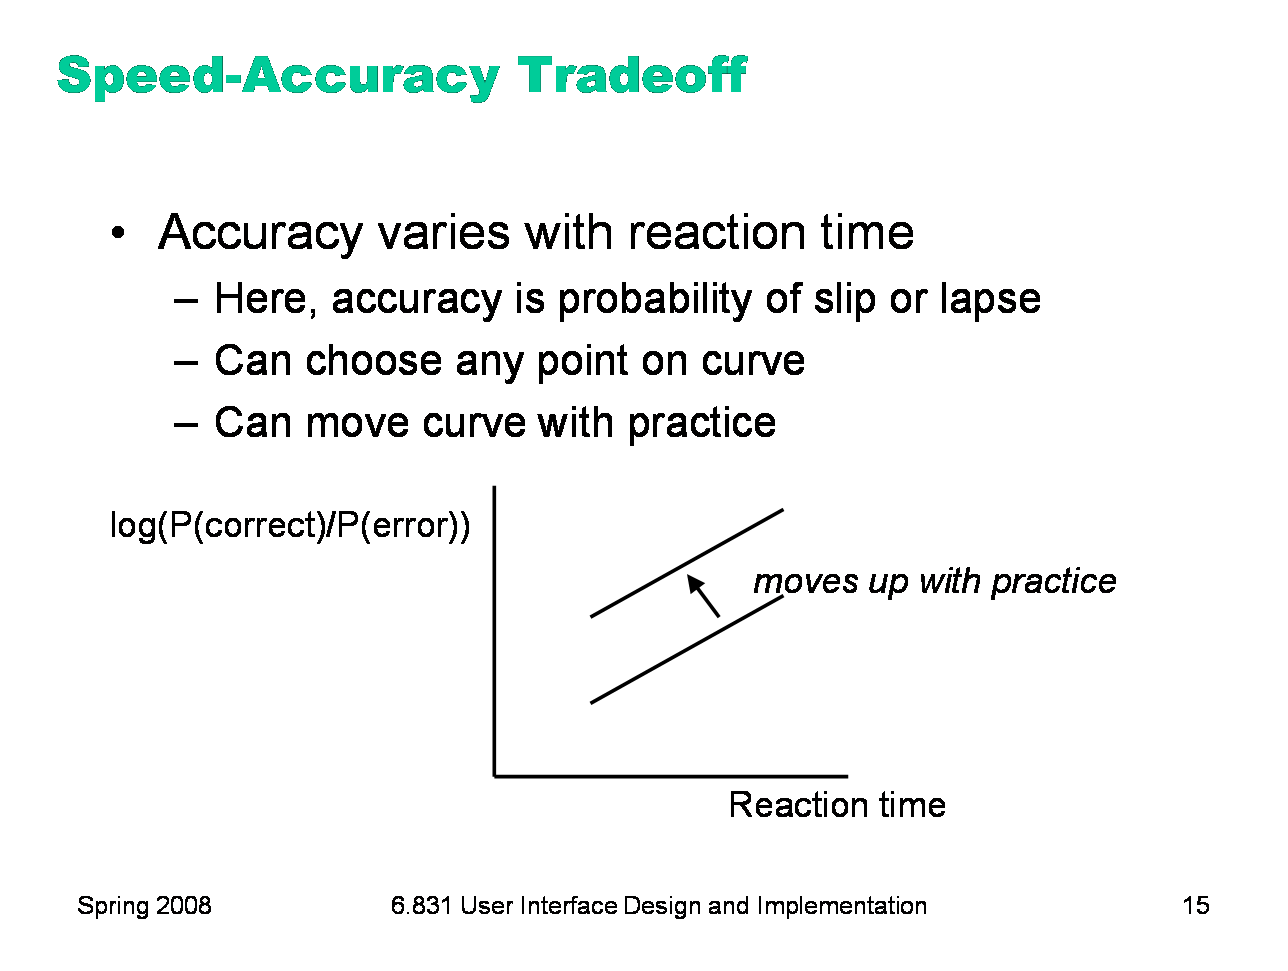 avoiding grammar mistakes is a speed accuracy trade off motivated